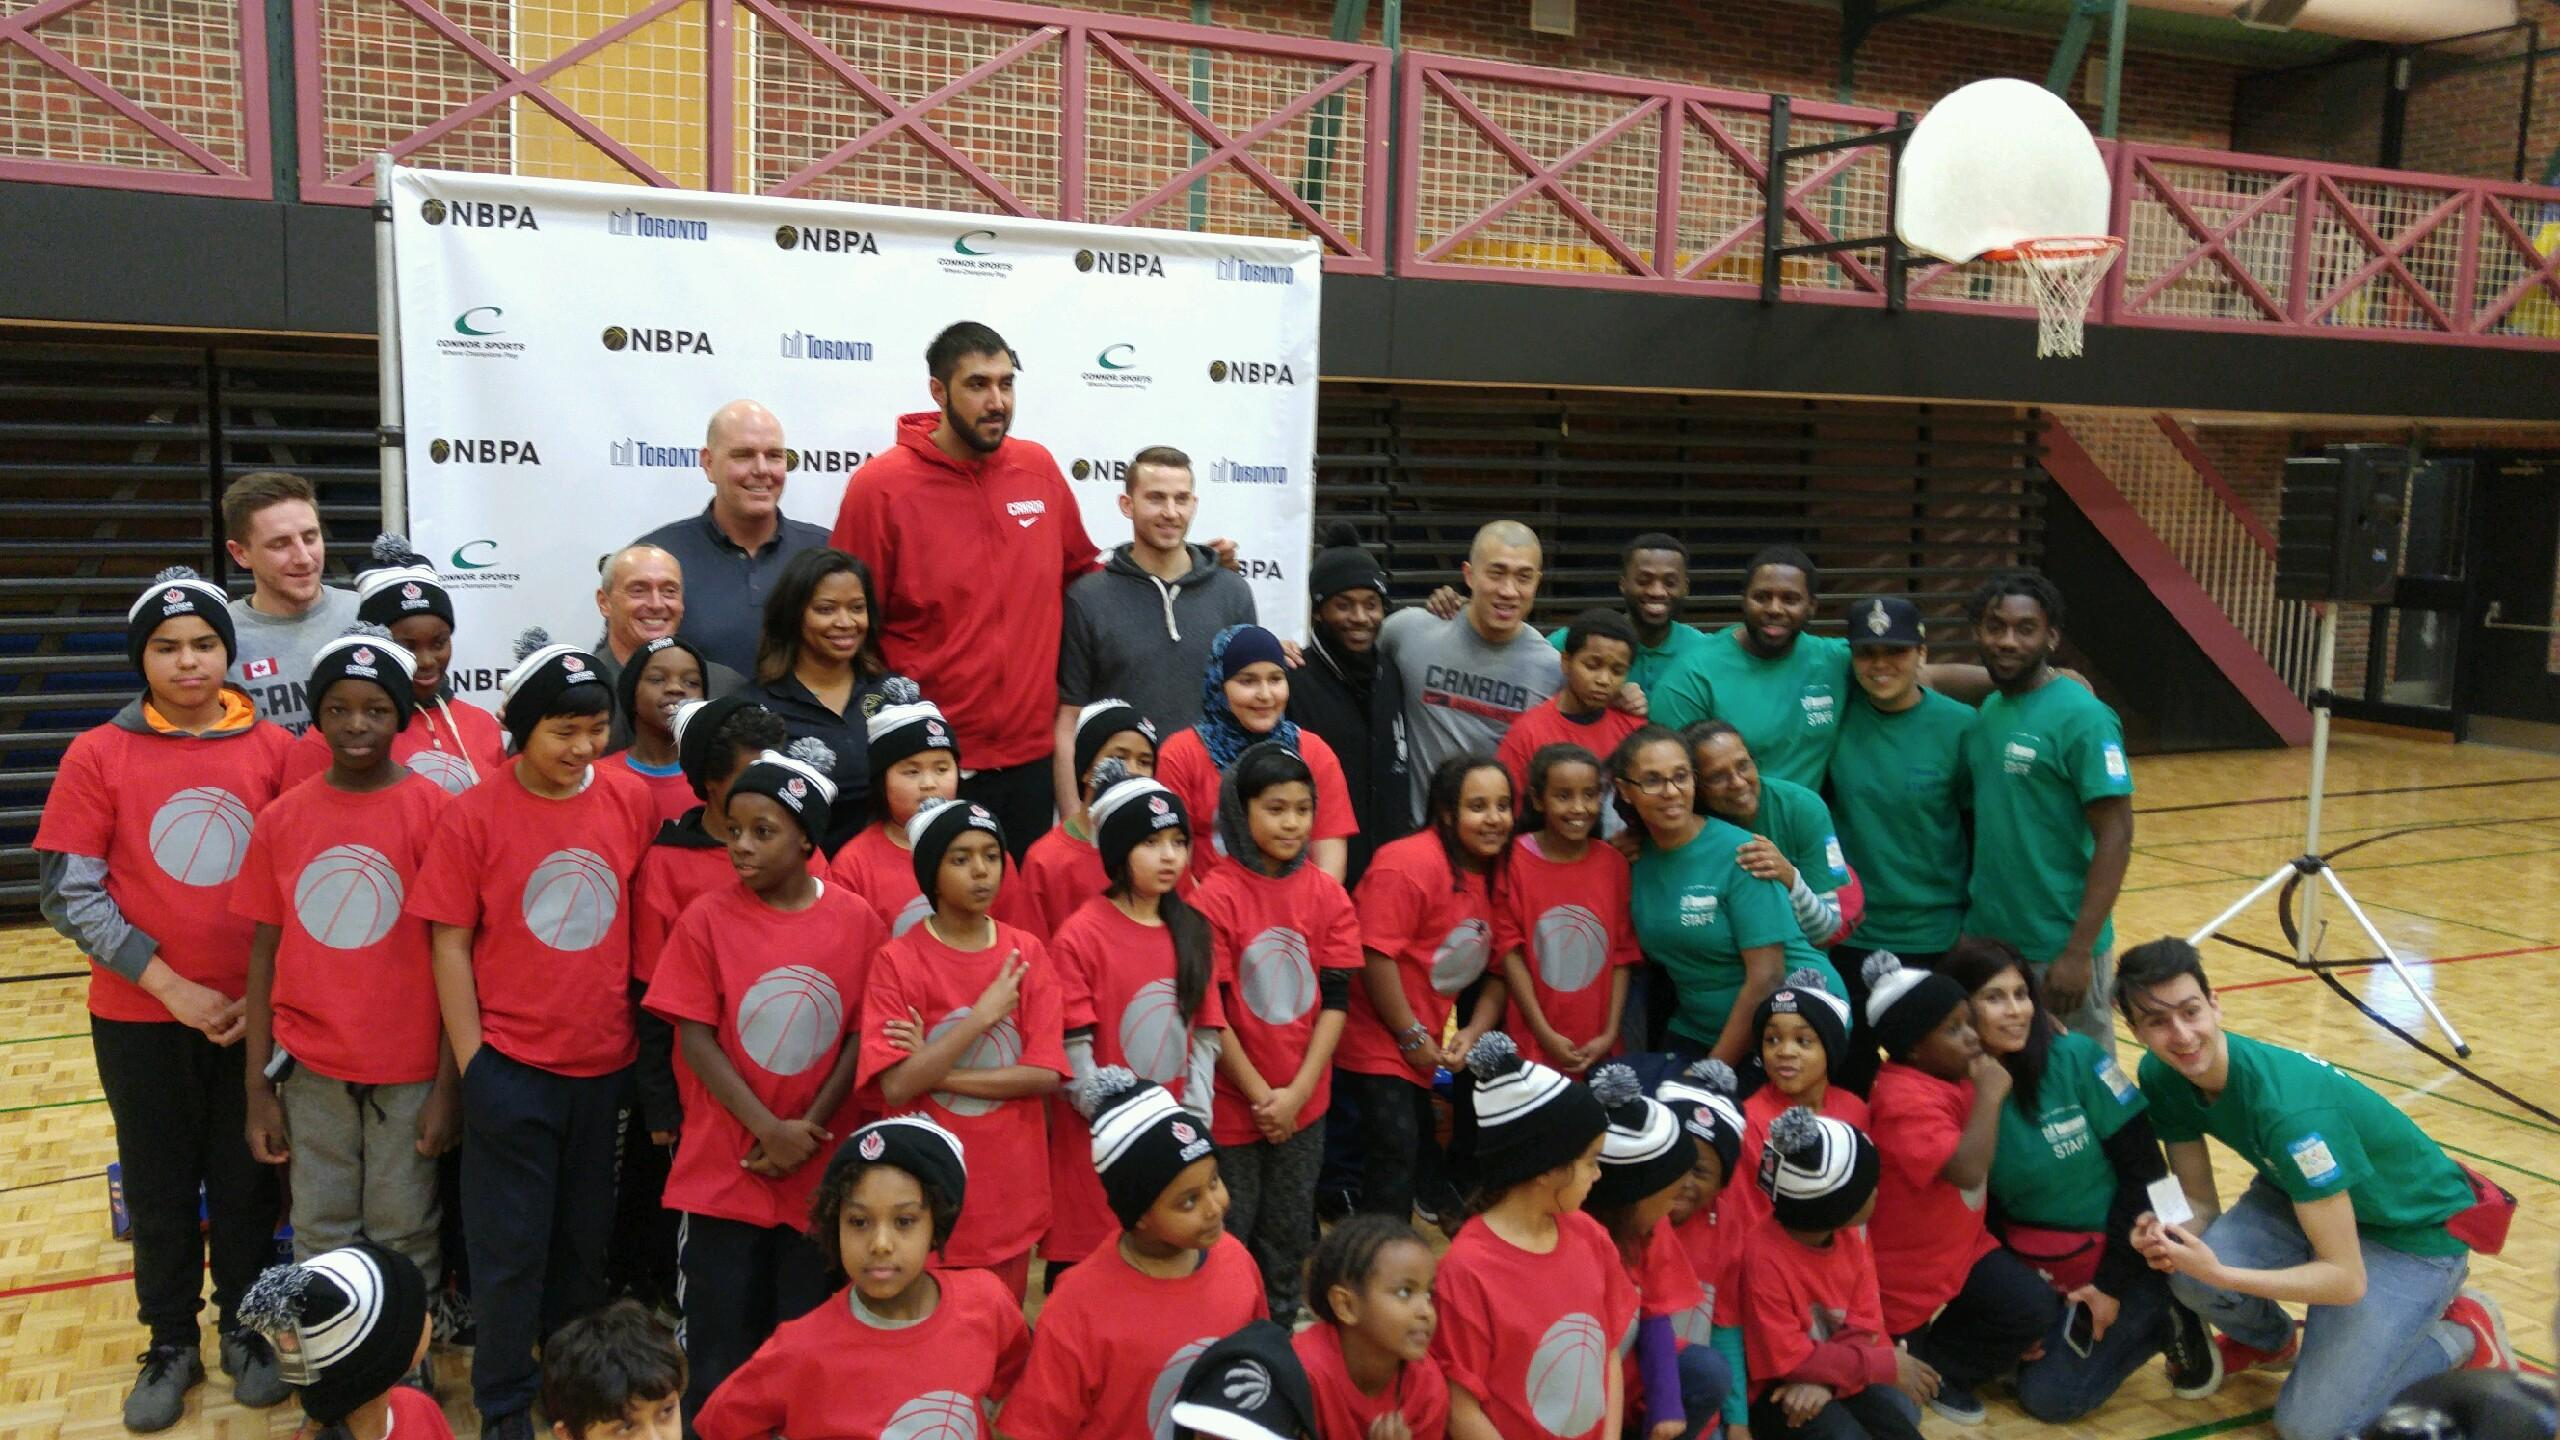 Champions of Community: Connor Sports, NBPA Foundation and City of Toronto Partner to Refurbish Courts at NBA All Star